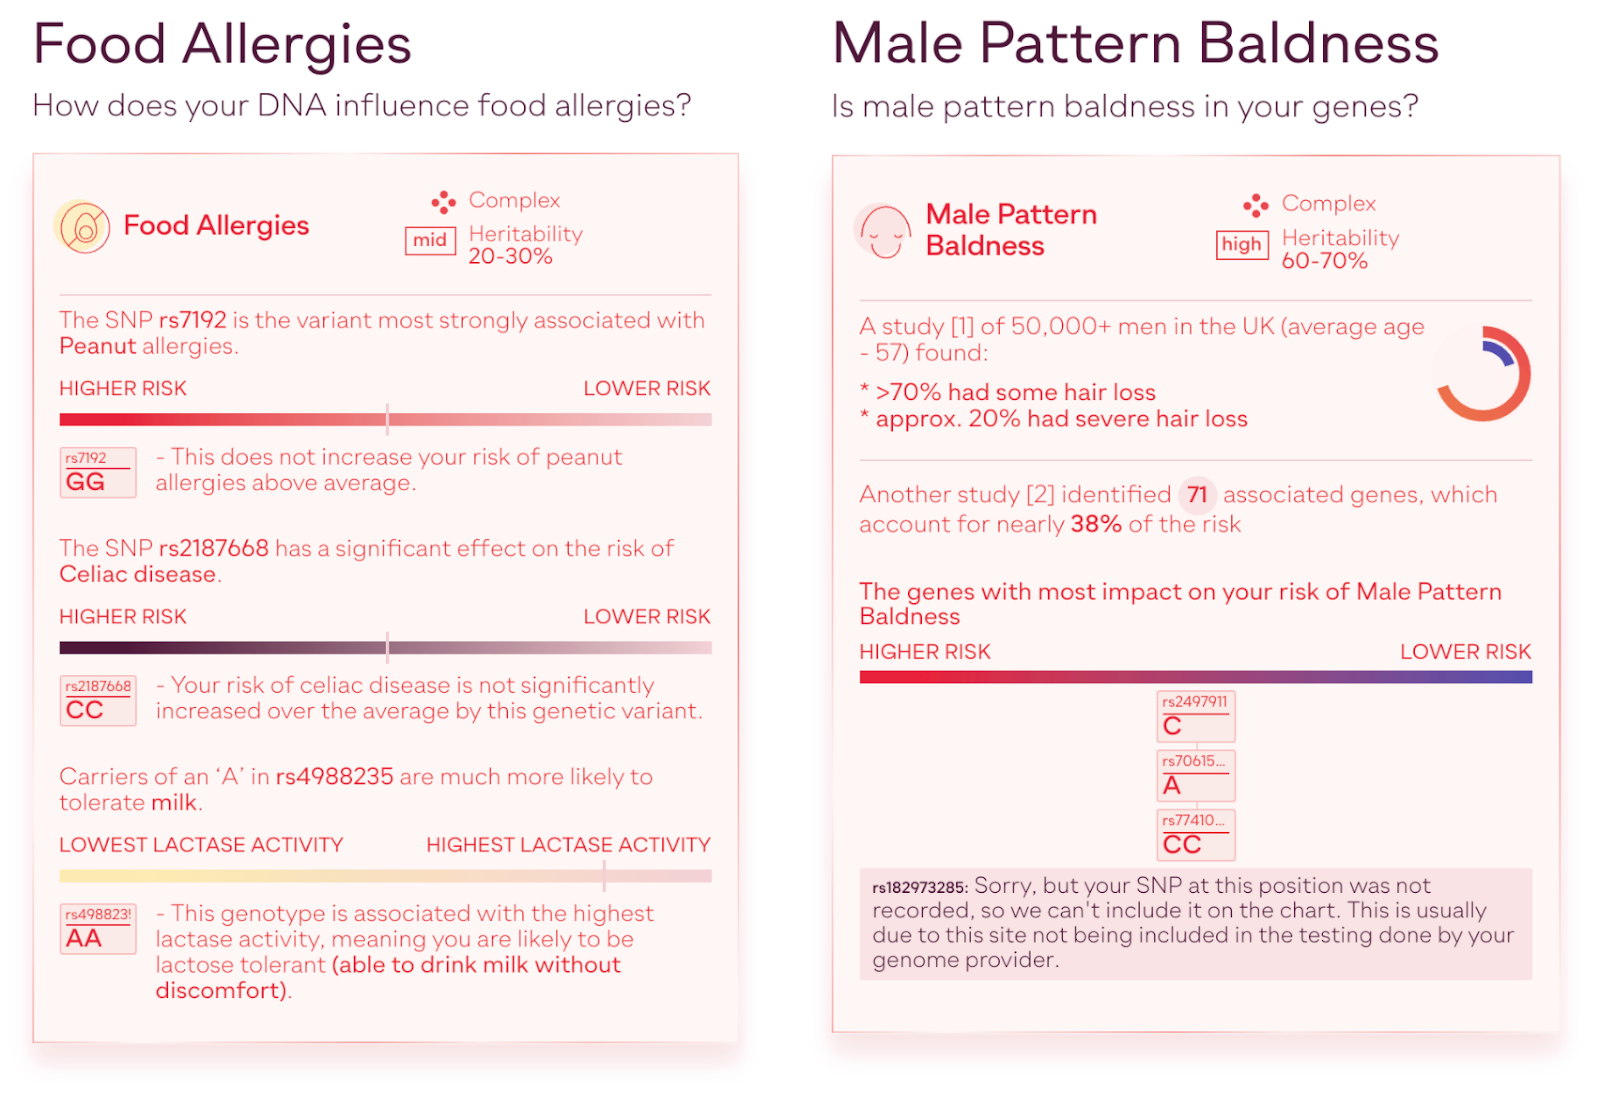 Personalized results of the food Sano Genetics allergies report and male pattern baldness report.